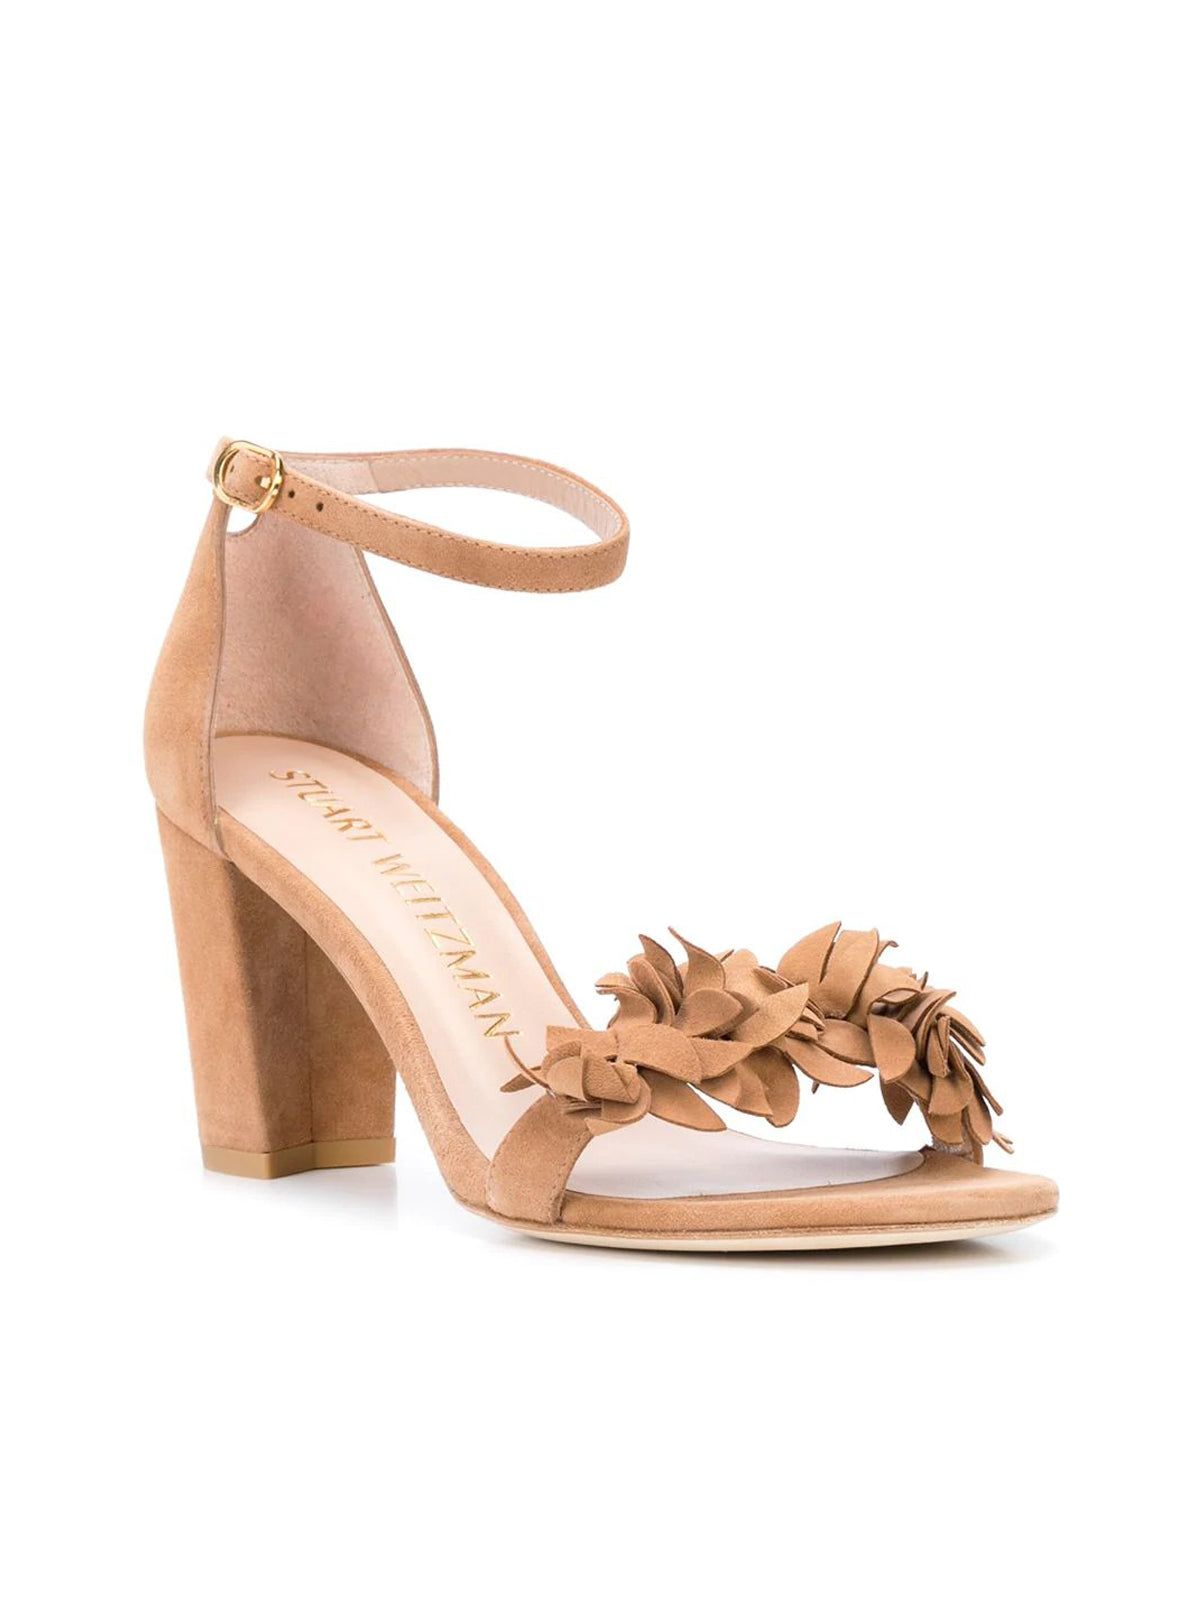 FLOAR STRAPPY SANDALS